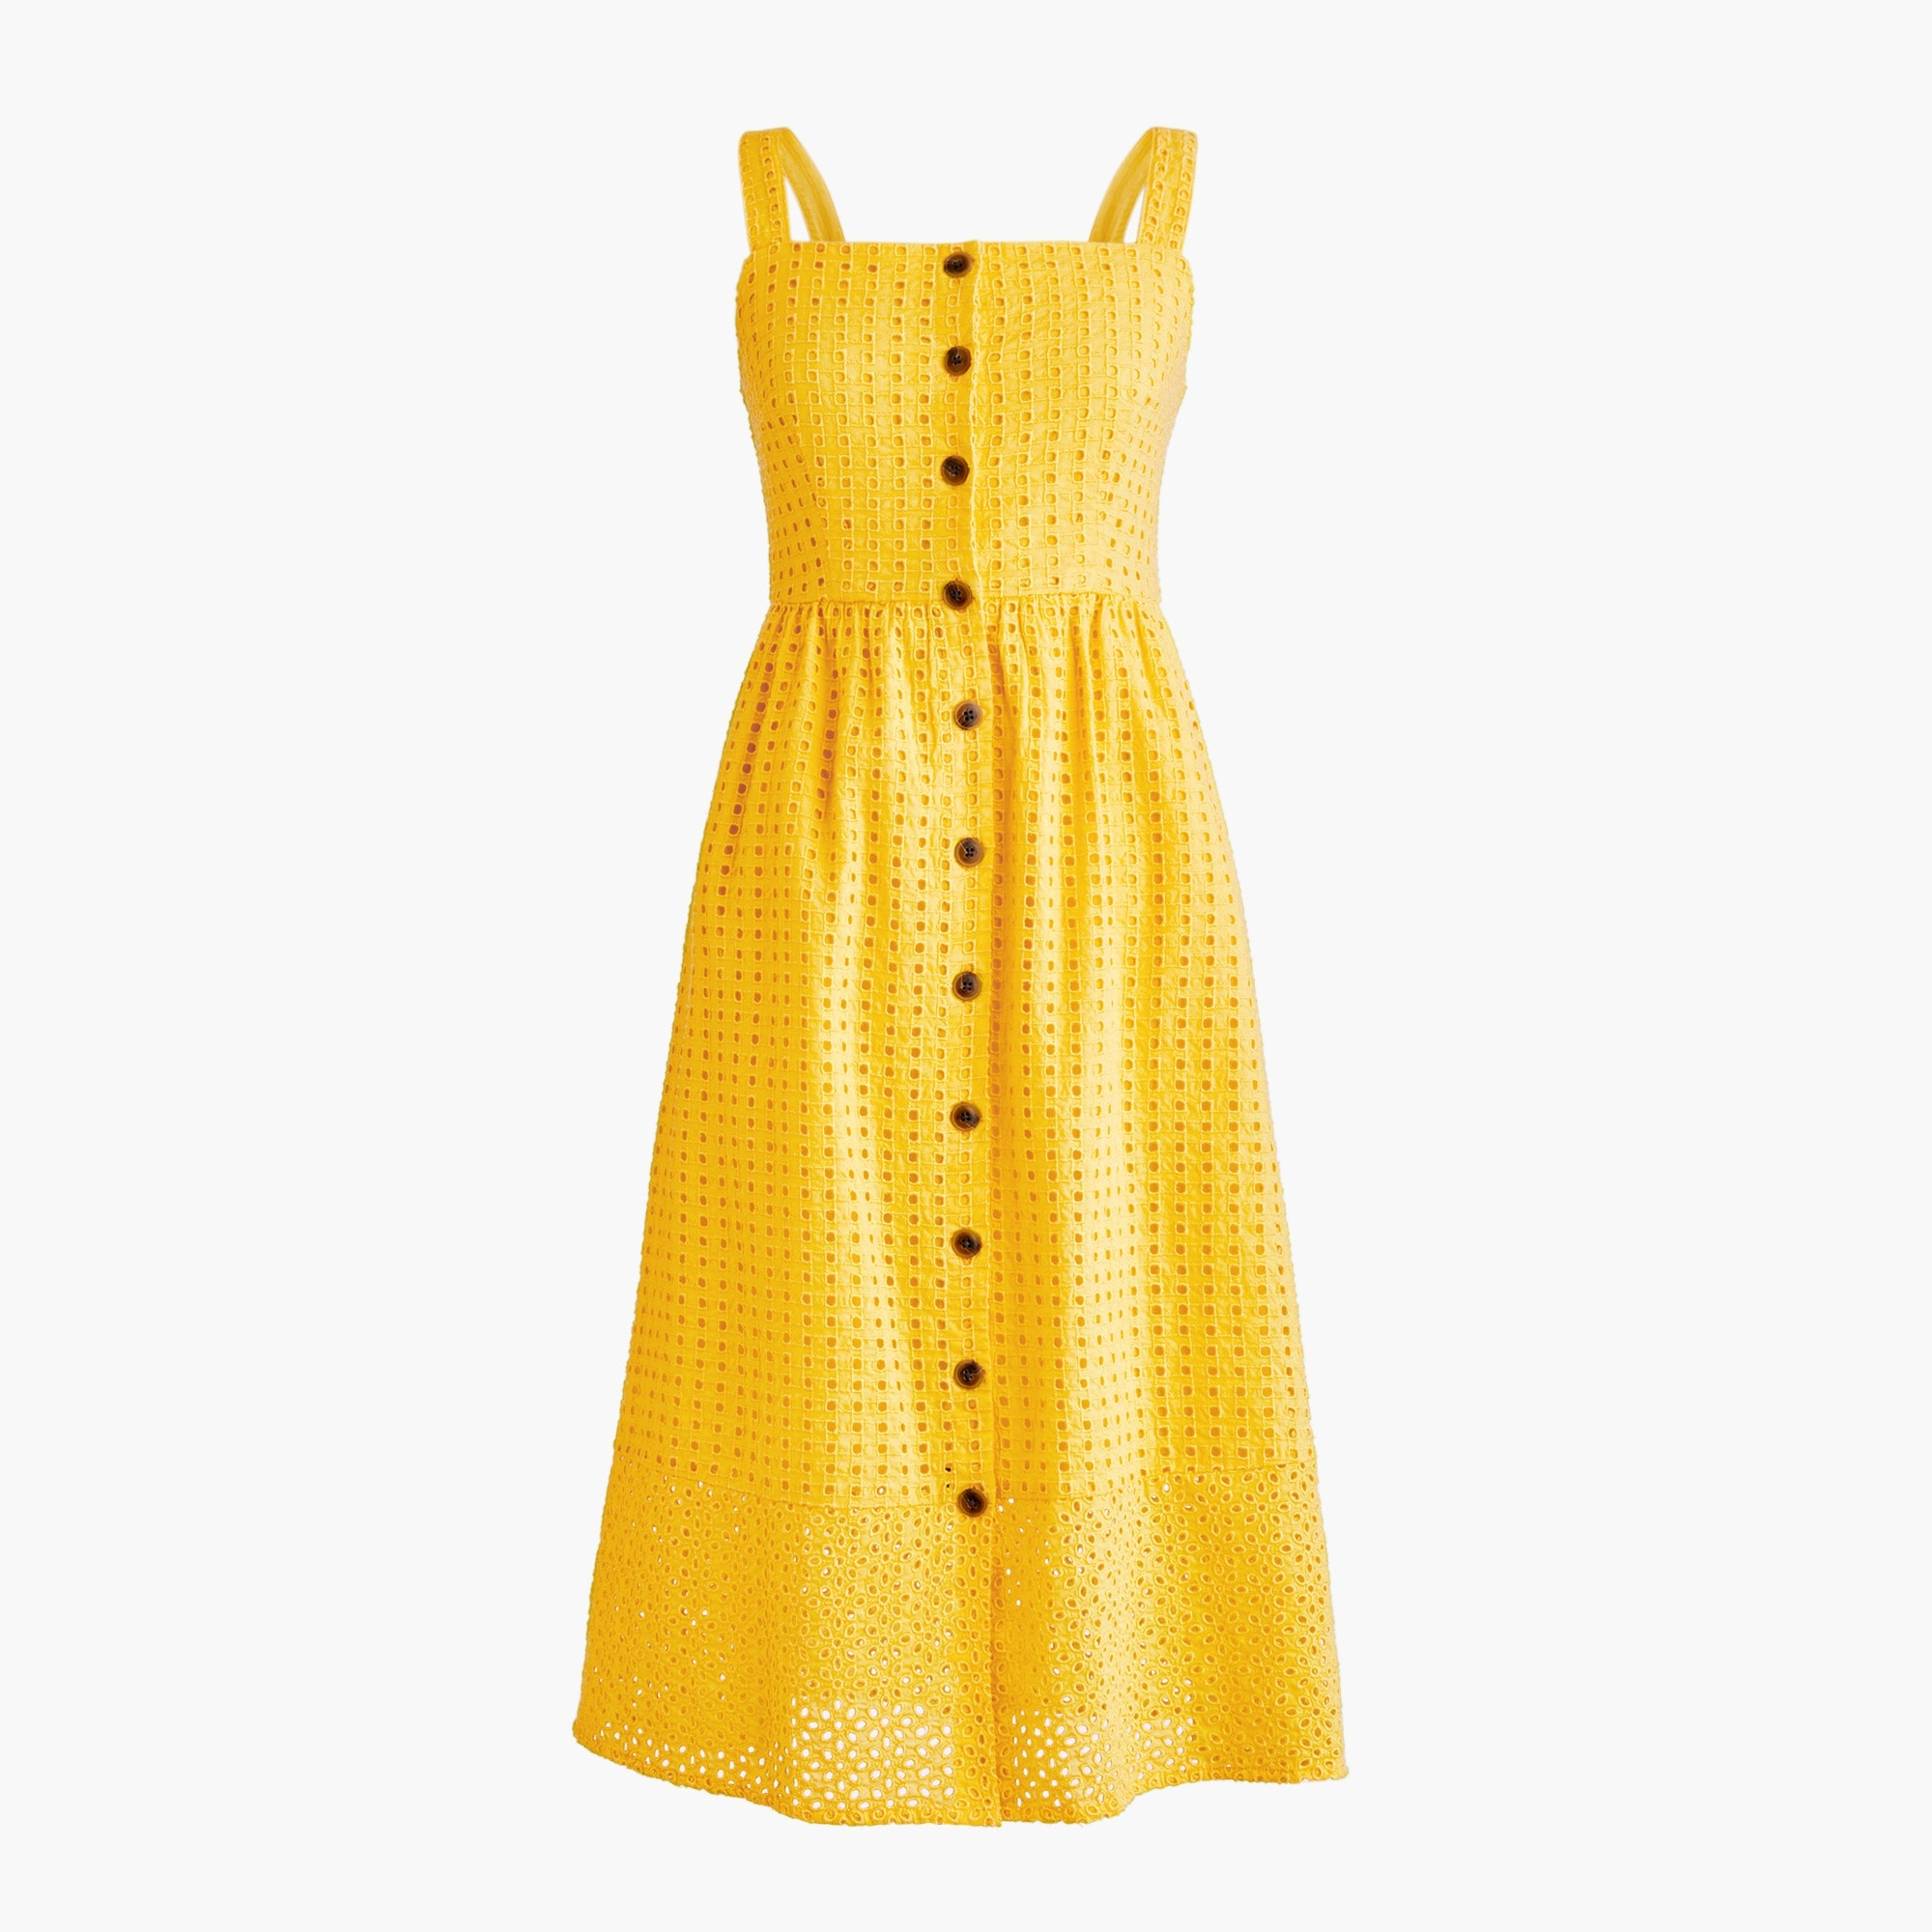 Classic button-front midi sundress in contrast embroidered eyelet